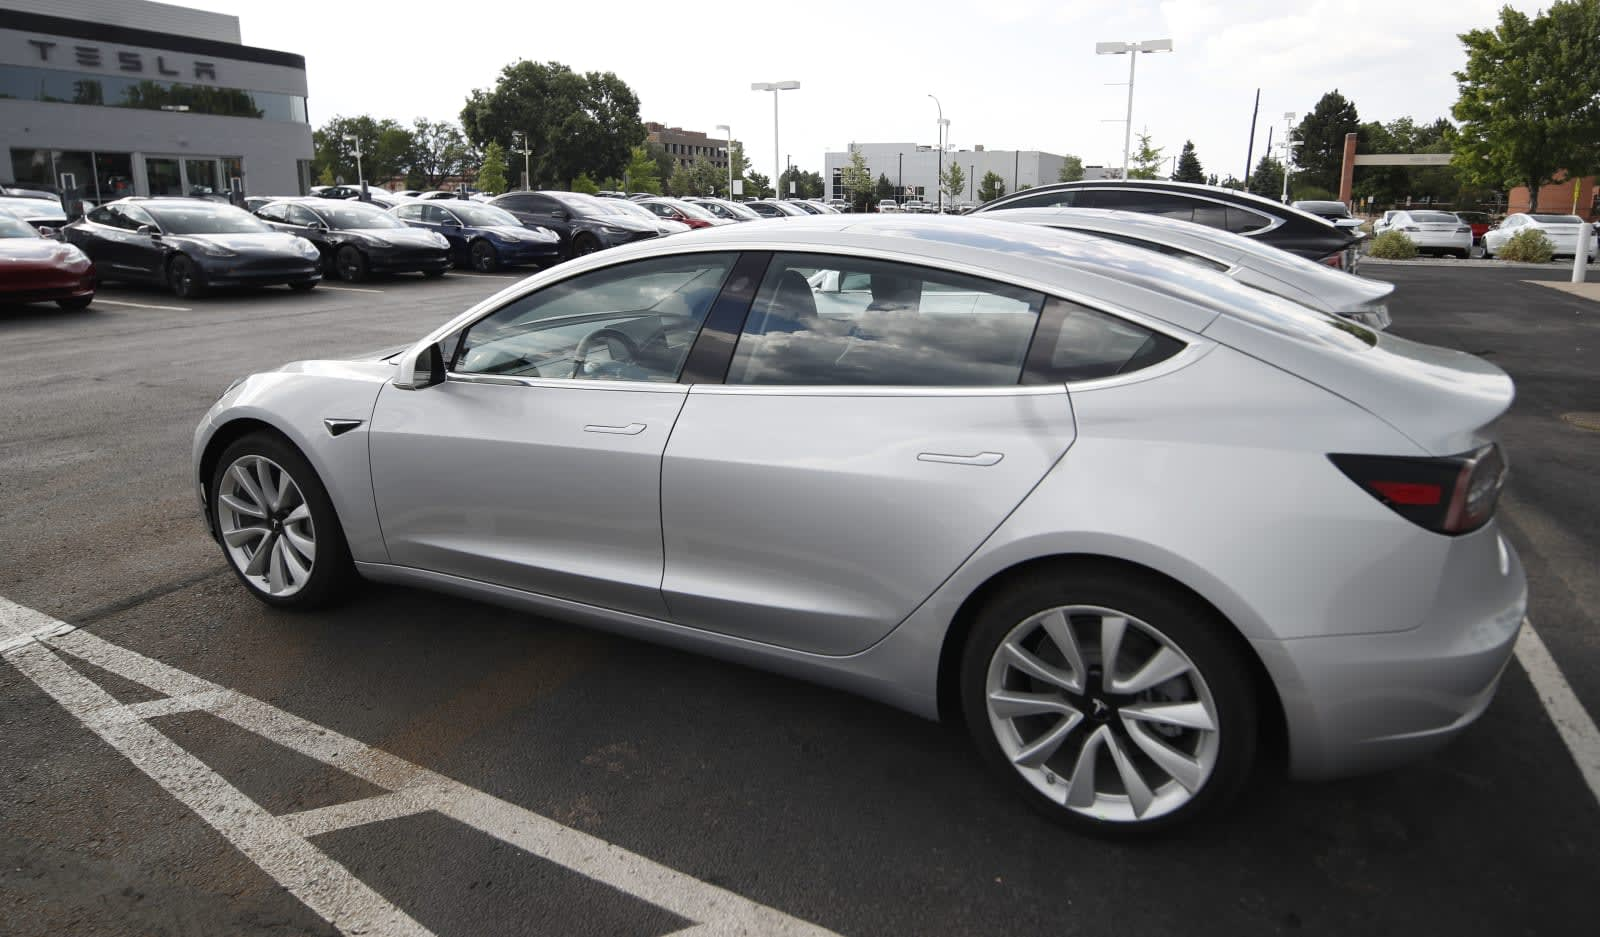 Tesla's Summon upgrade turns vehicles into remote-controlled cars